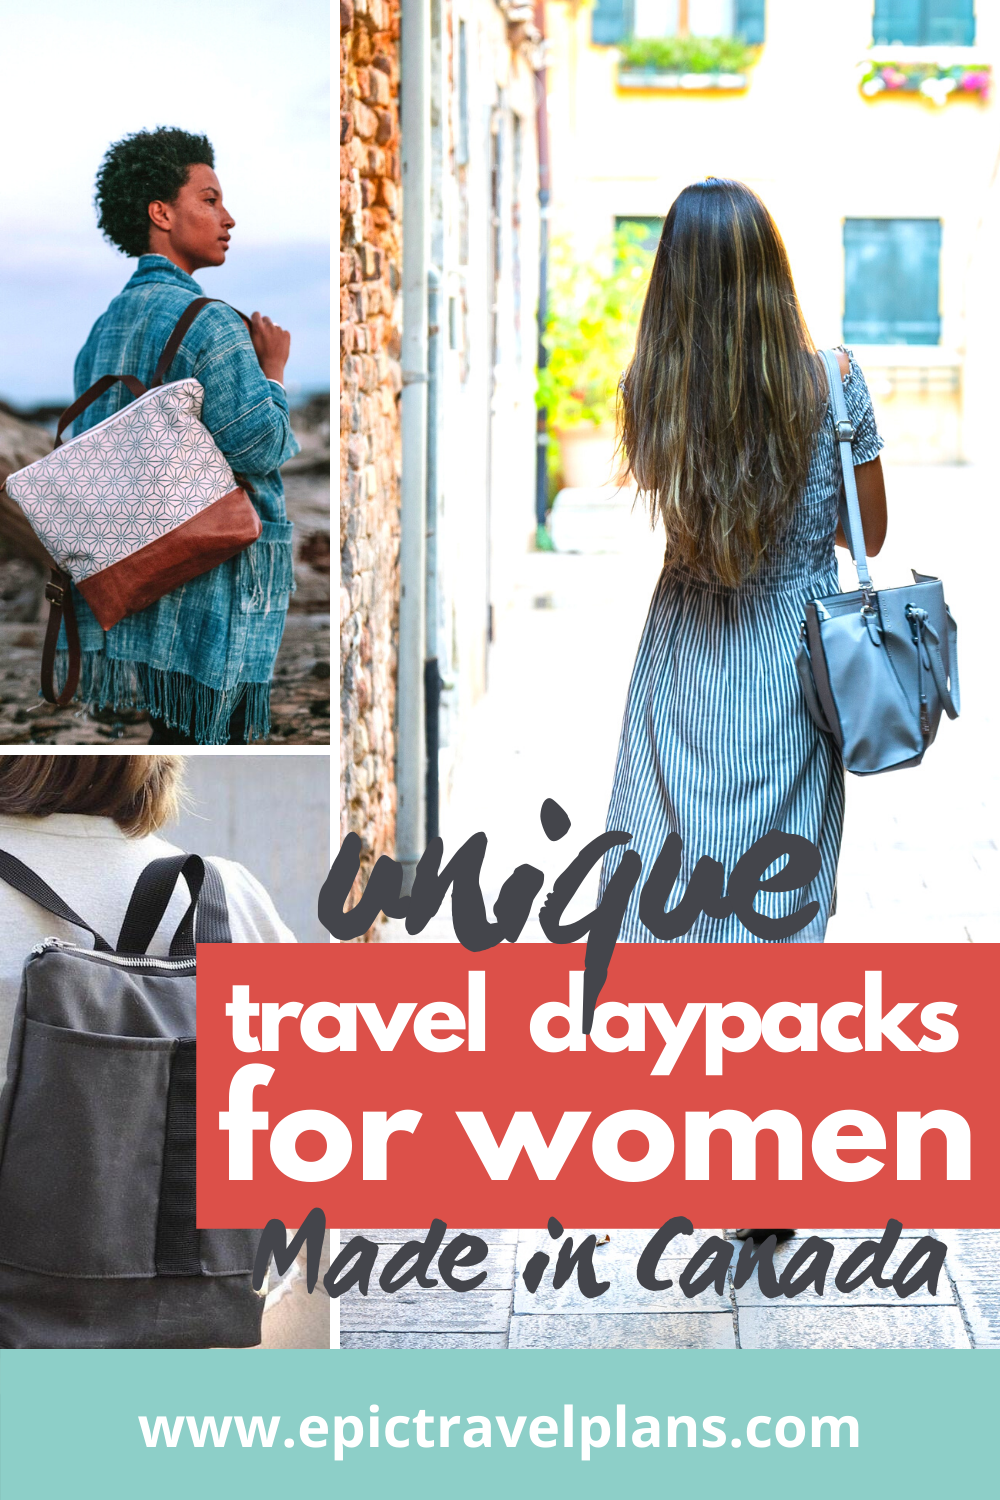 Unique travel daypacks for women, Etsy travel bags, handmade in Canada